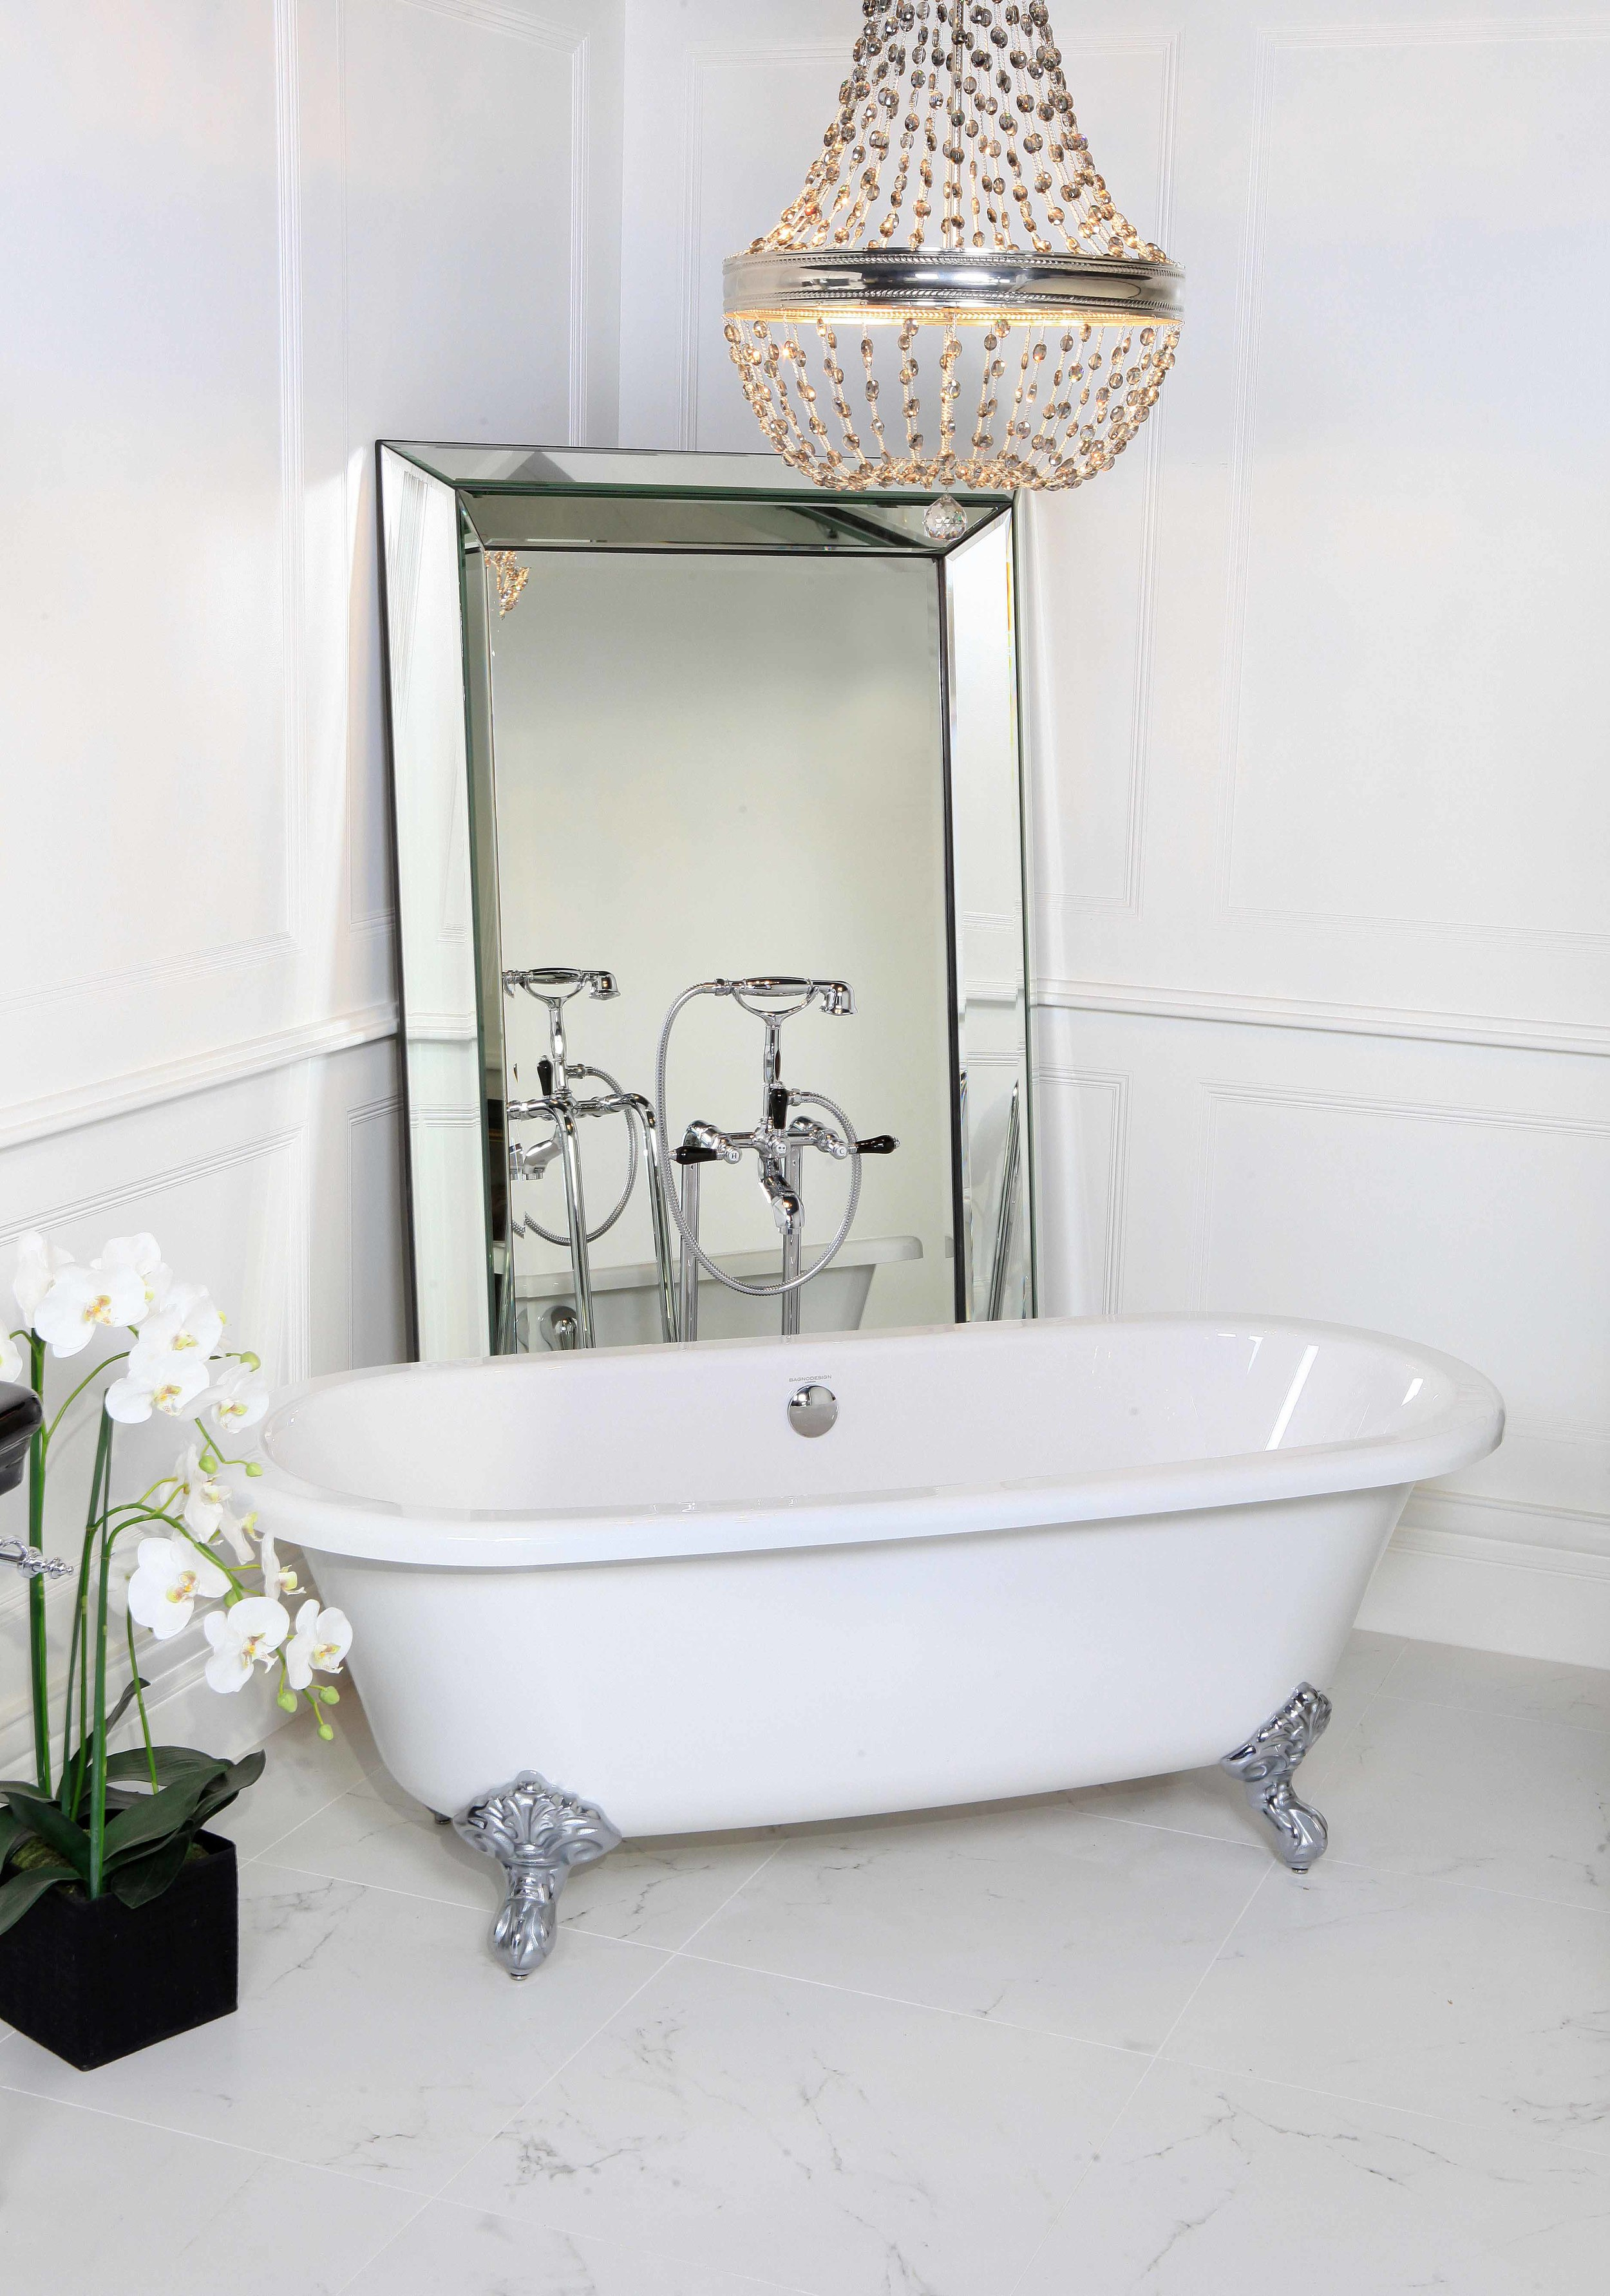 Bagnodesign Princess Nouveau Bathtubs Bagnodesign Luxury Bathrooms Glasgow Bathroom